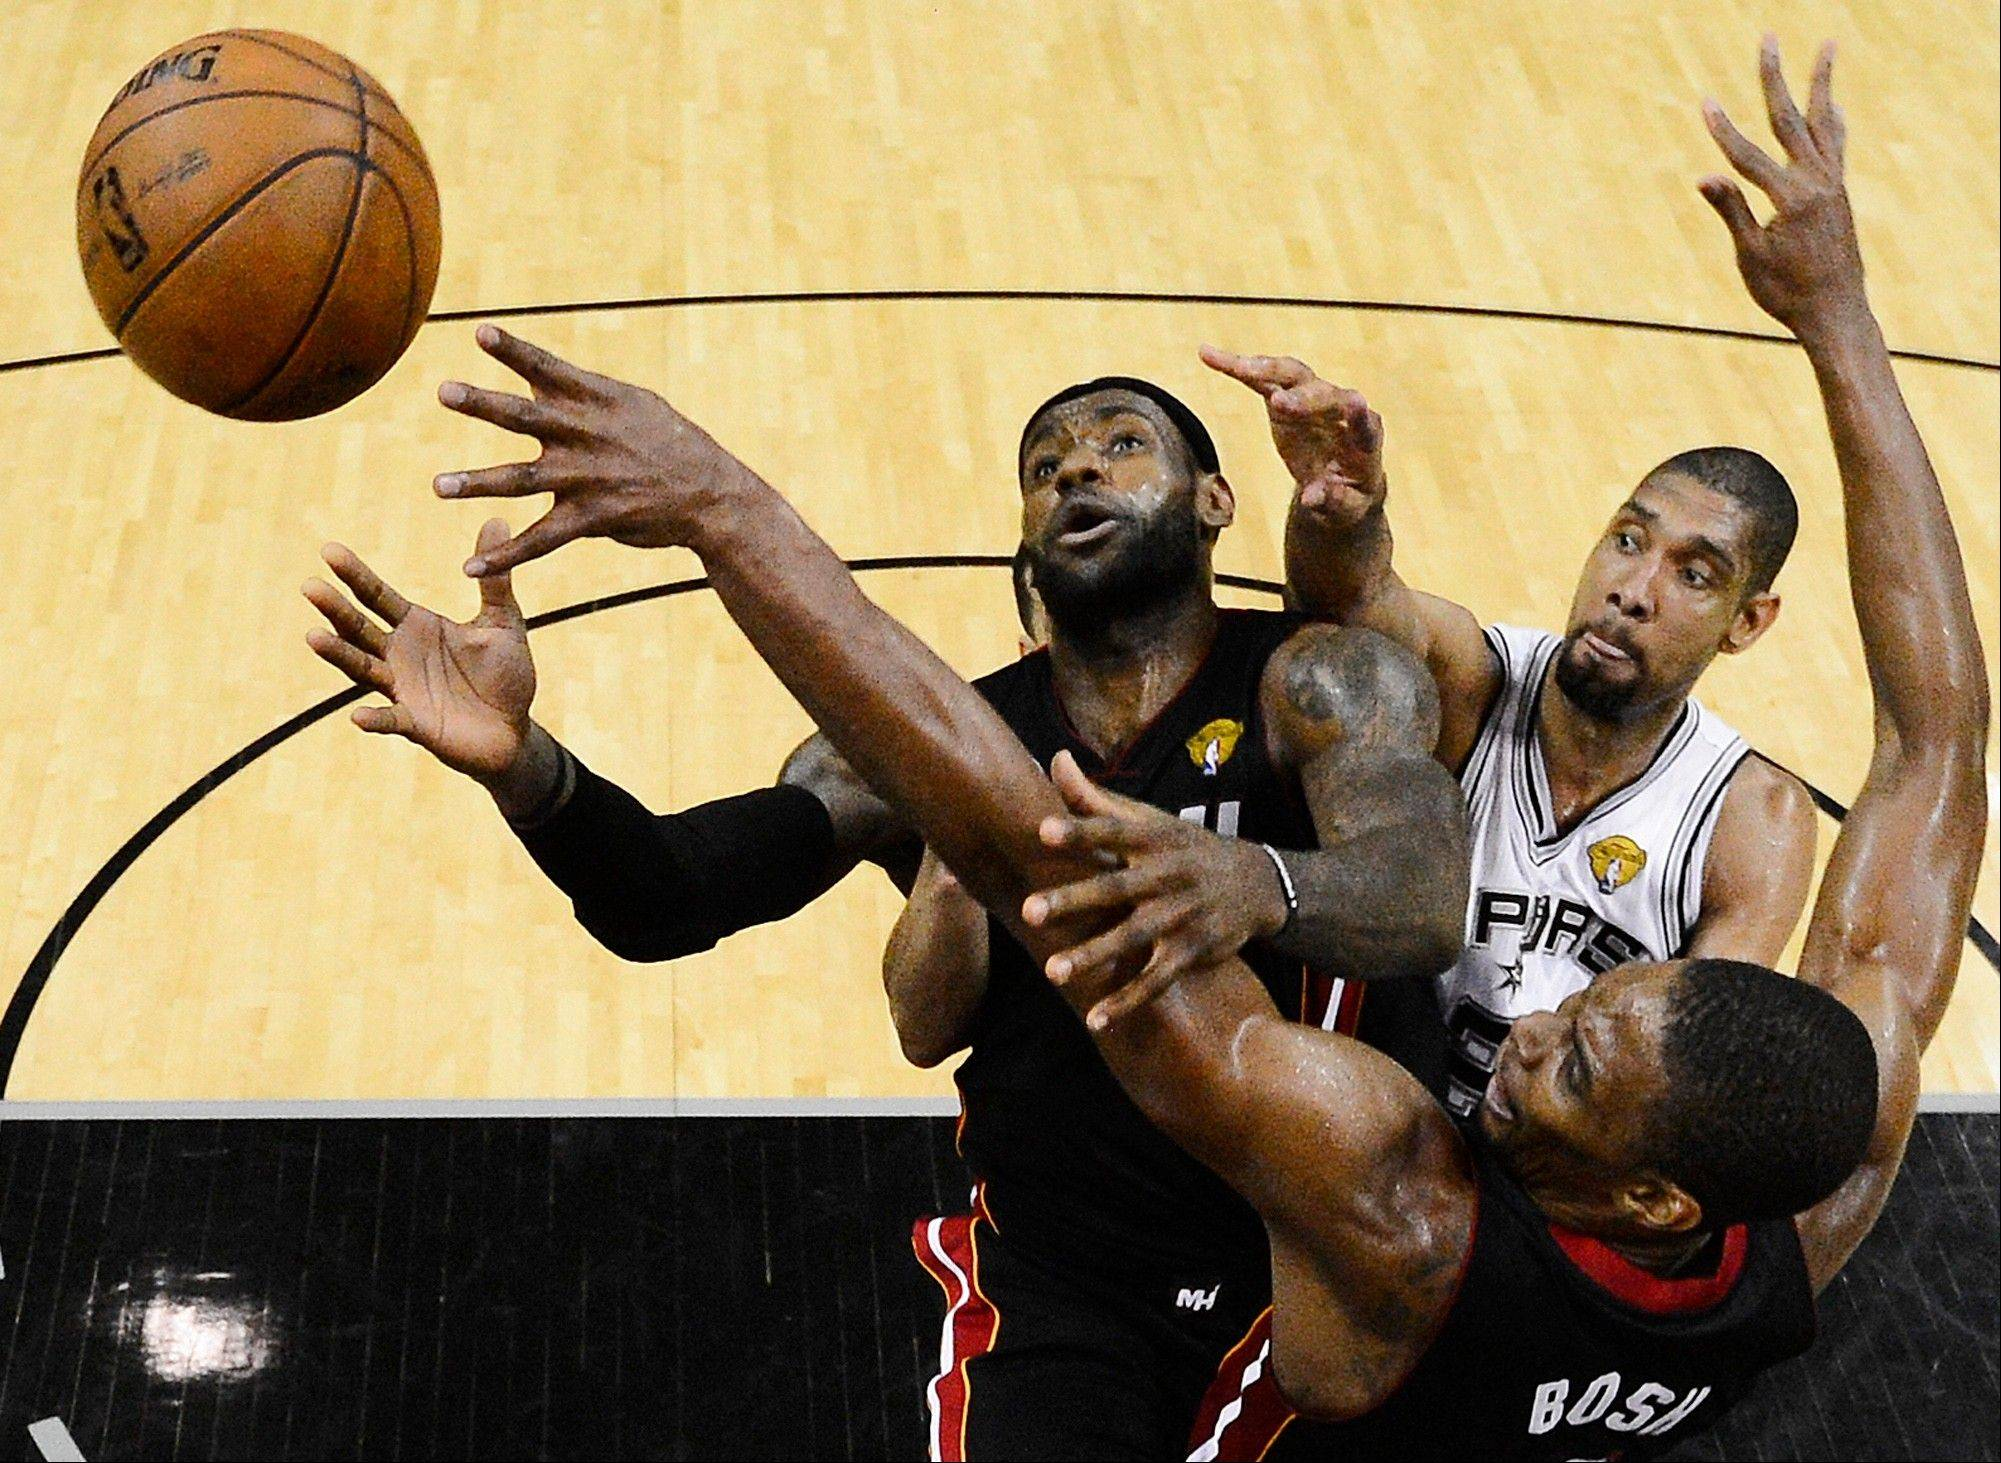 5 things to watch for in Game 6 of NBA Finals